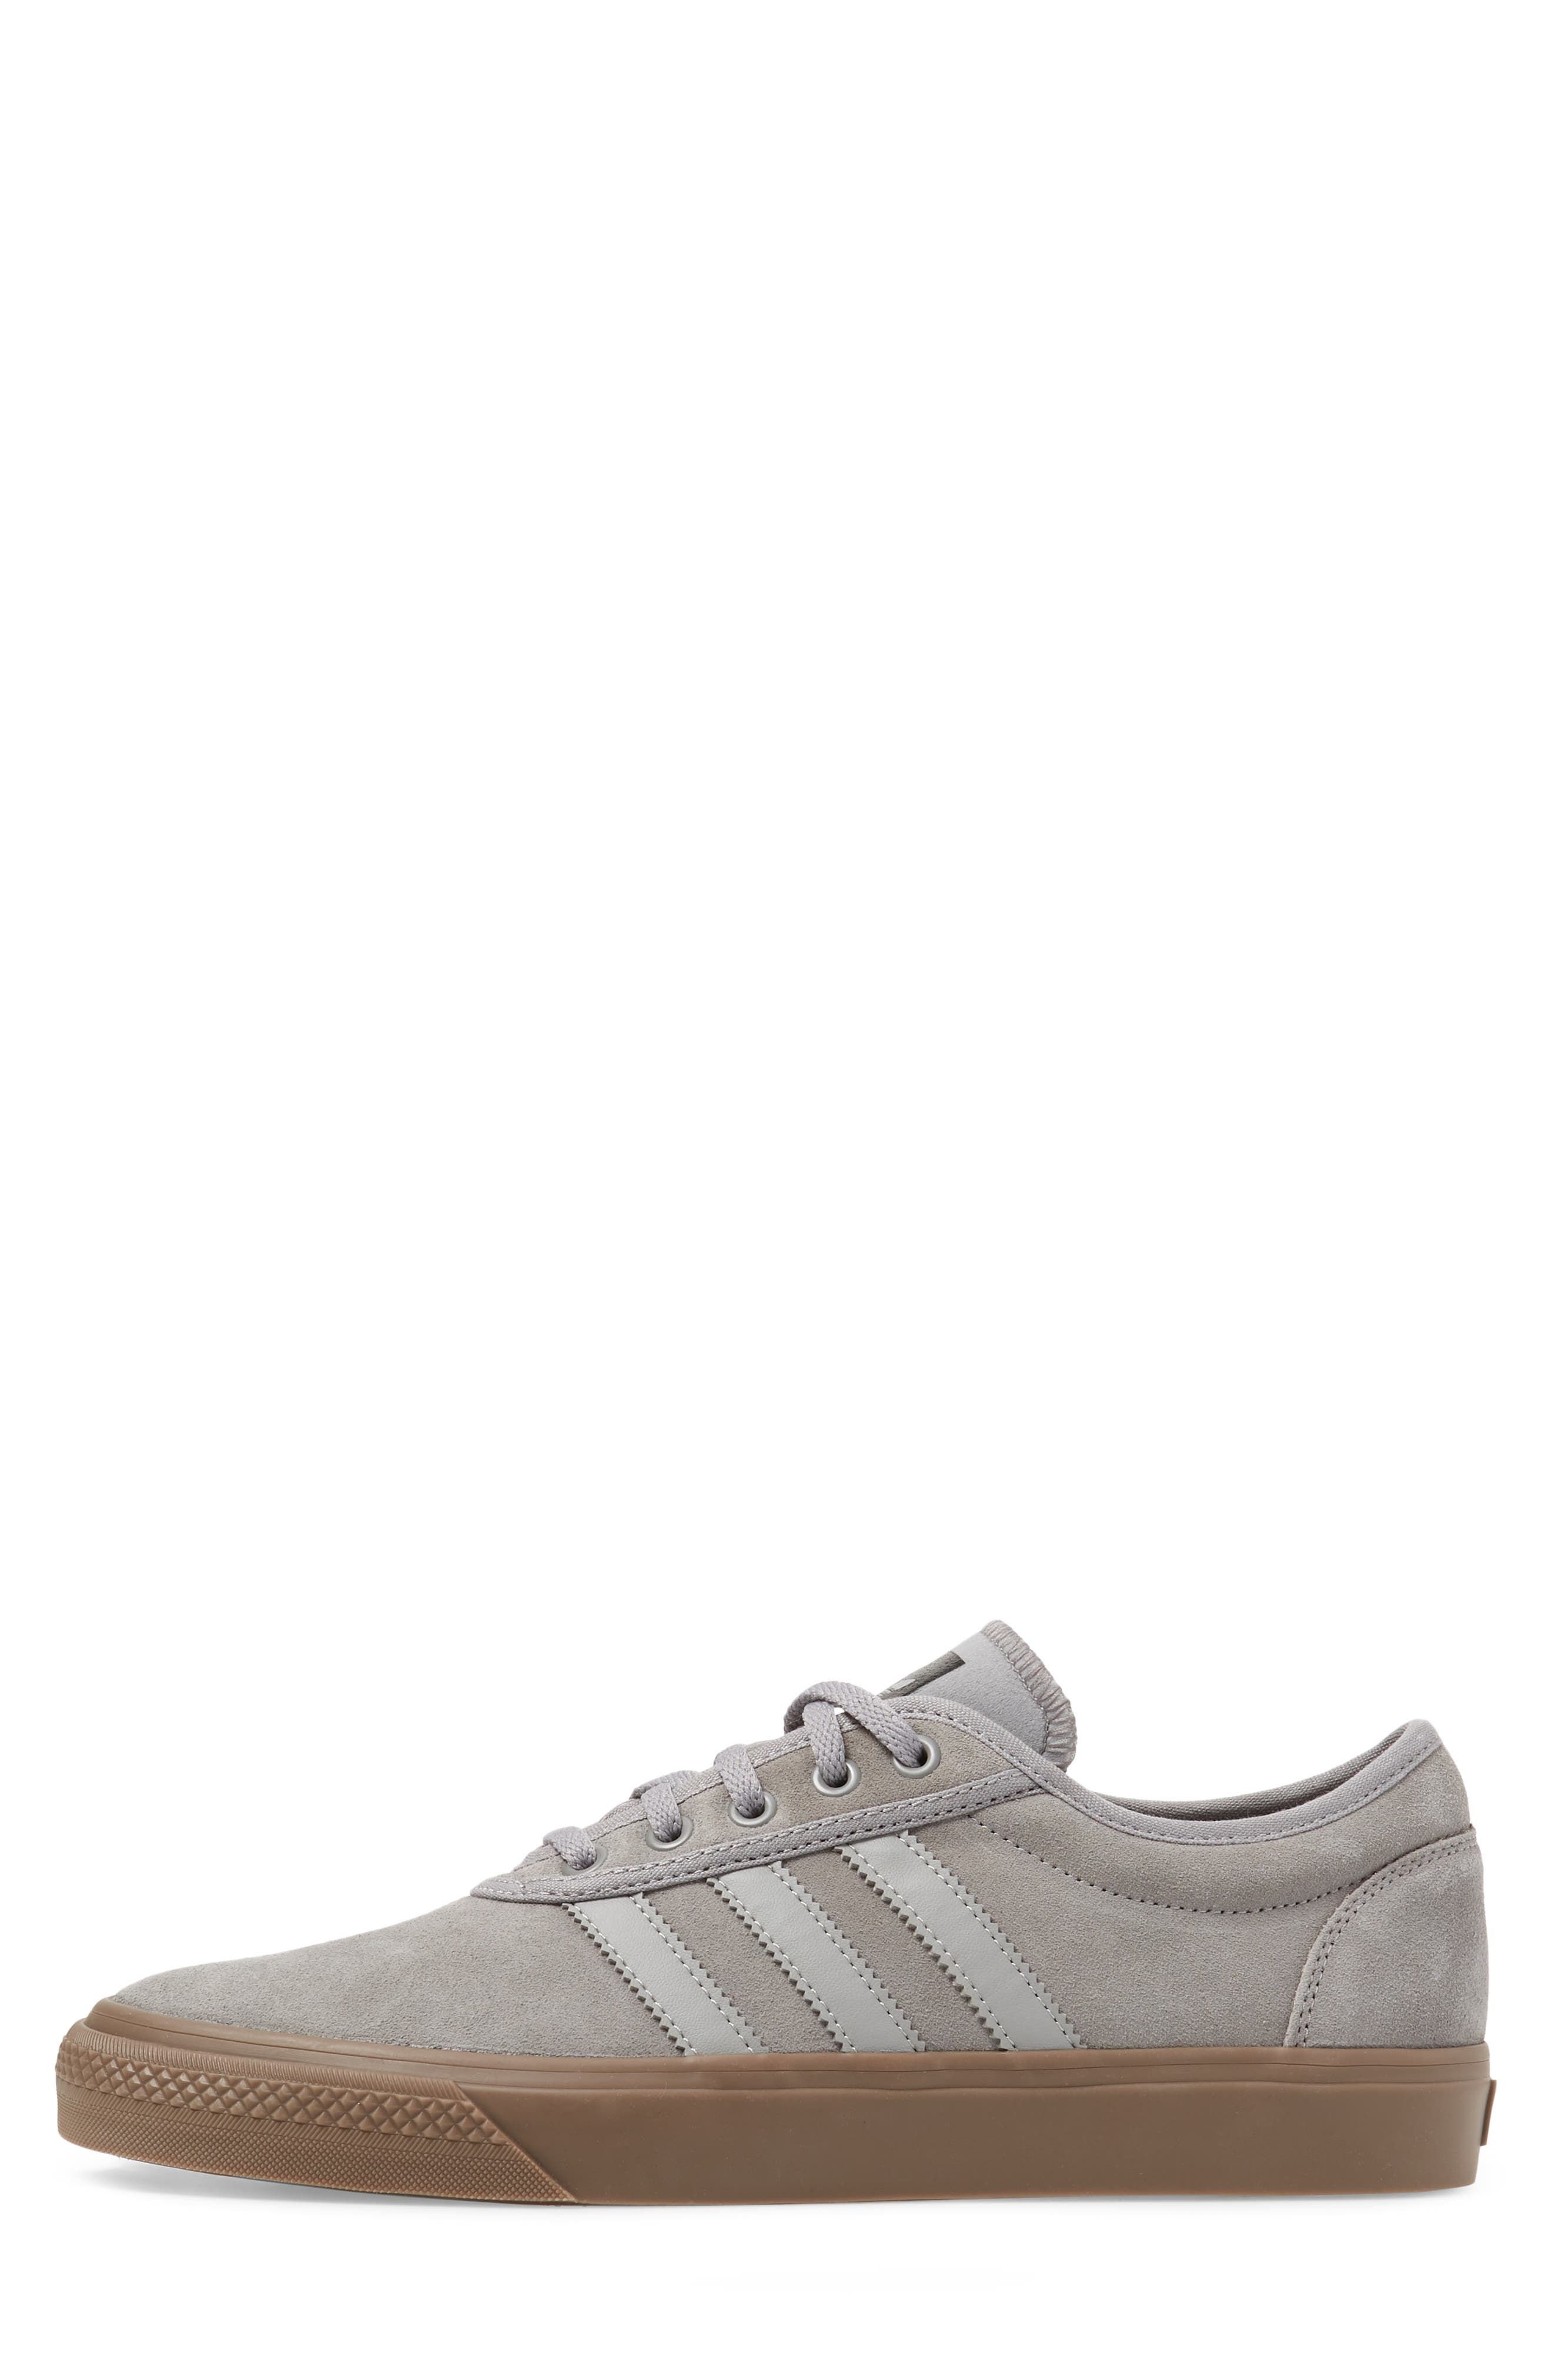 Adiease Skate Sneaker,                             Alternate thumbnail 3, color,                             SOLID GREY/ SOLID GREY/ GUM